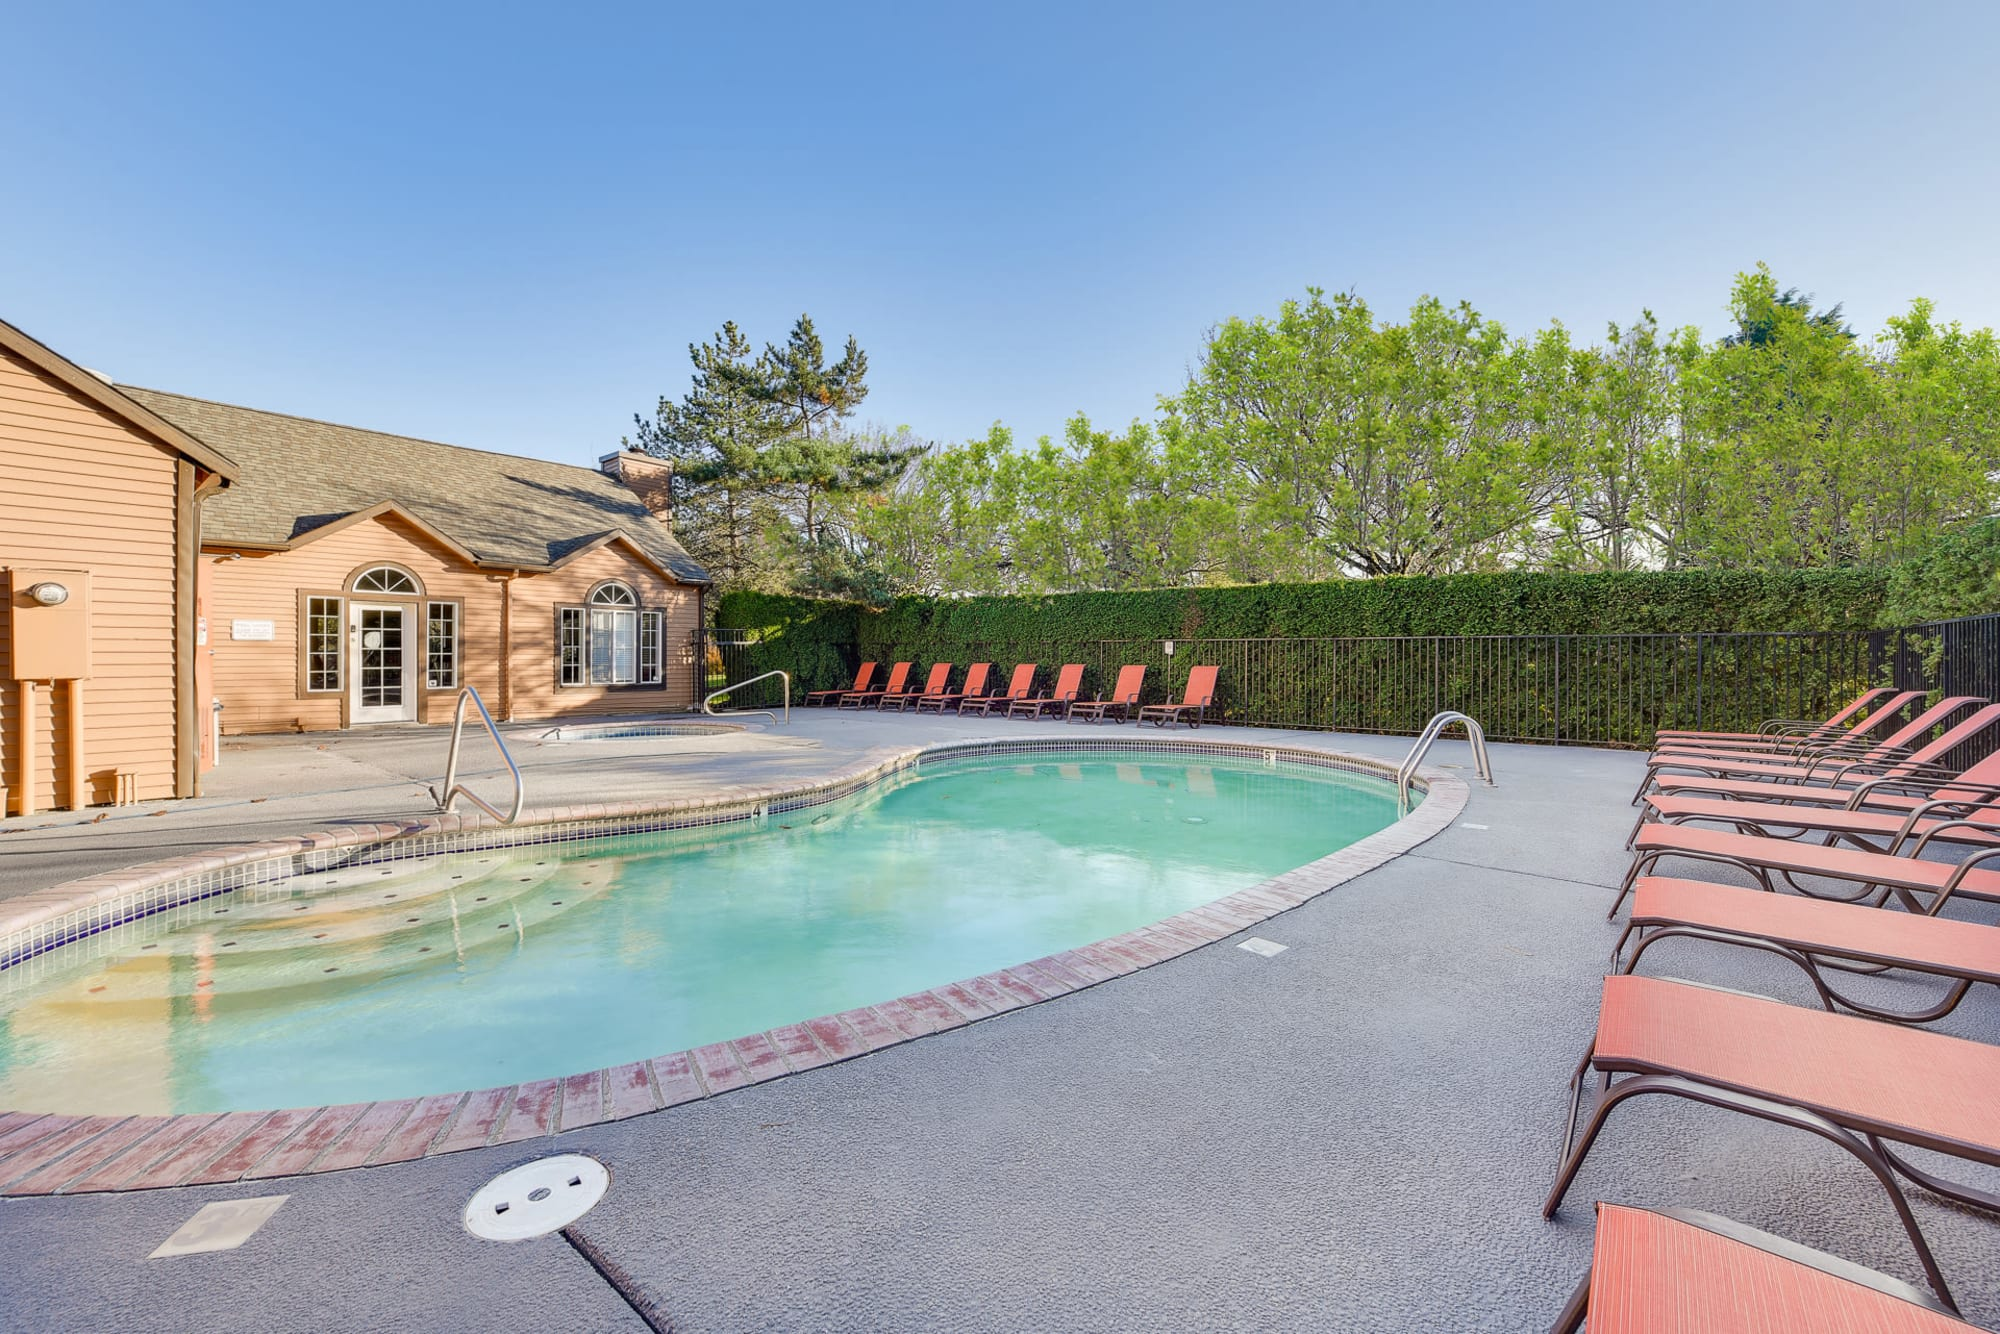 Sparkling pool with lounge chairs at Renaissance at 29th Apartments in Vancouver, Washington